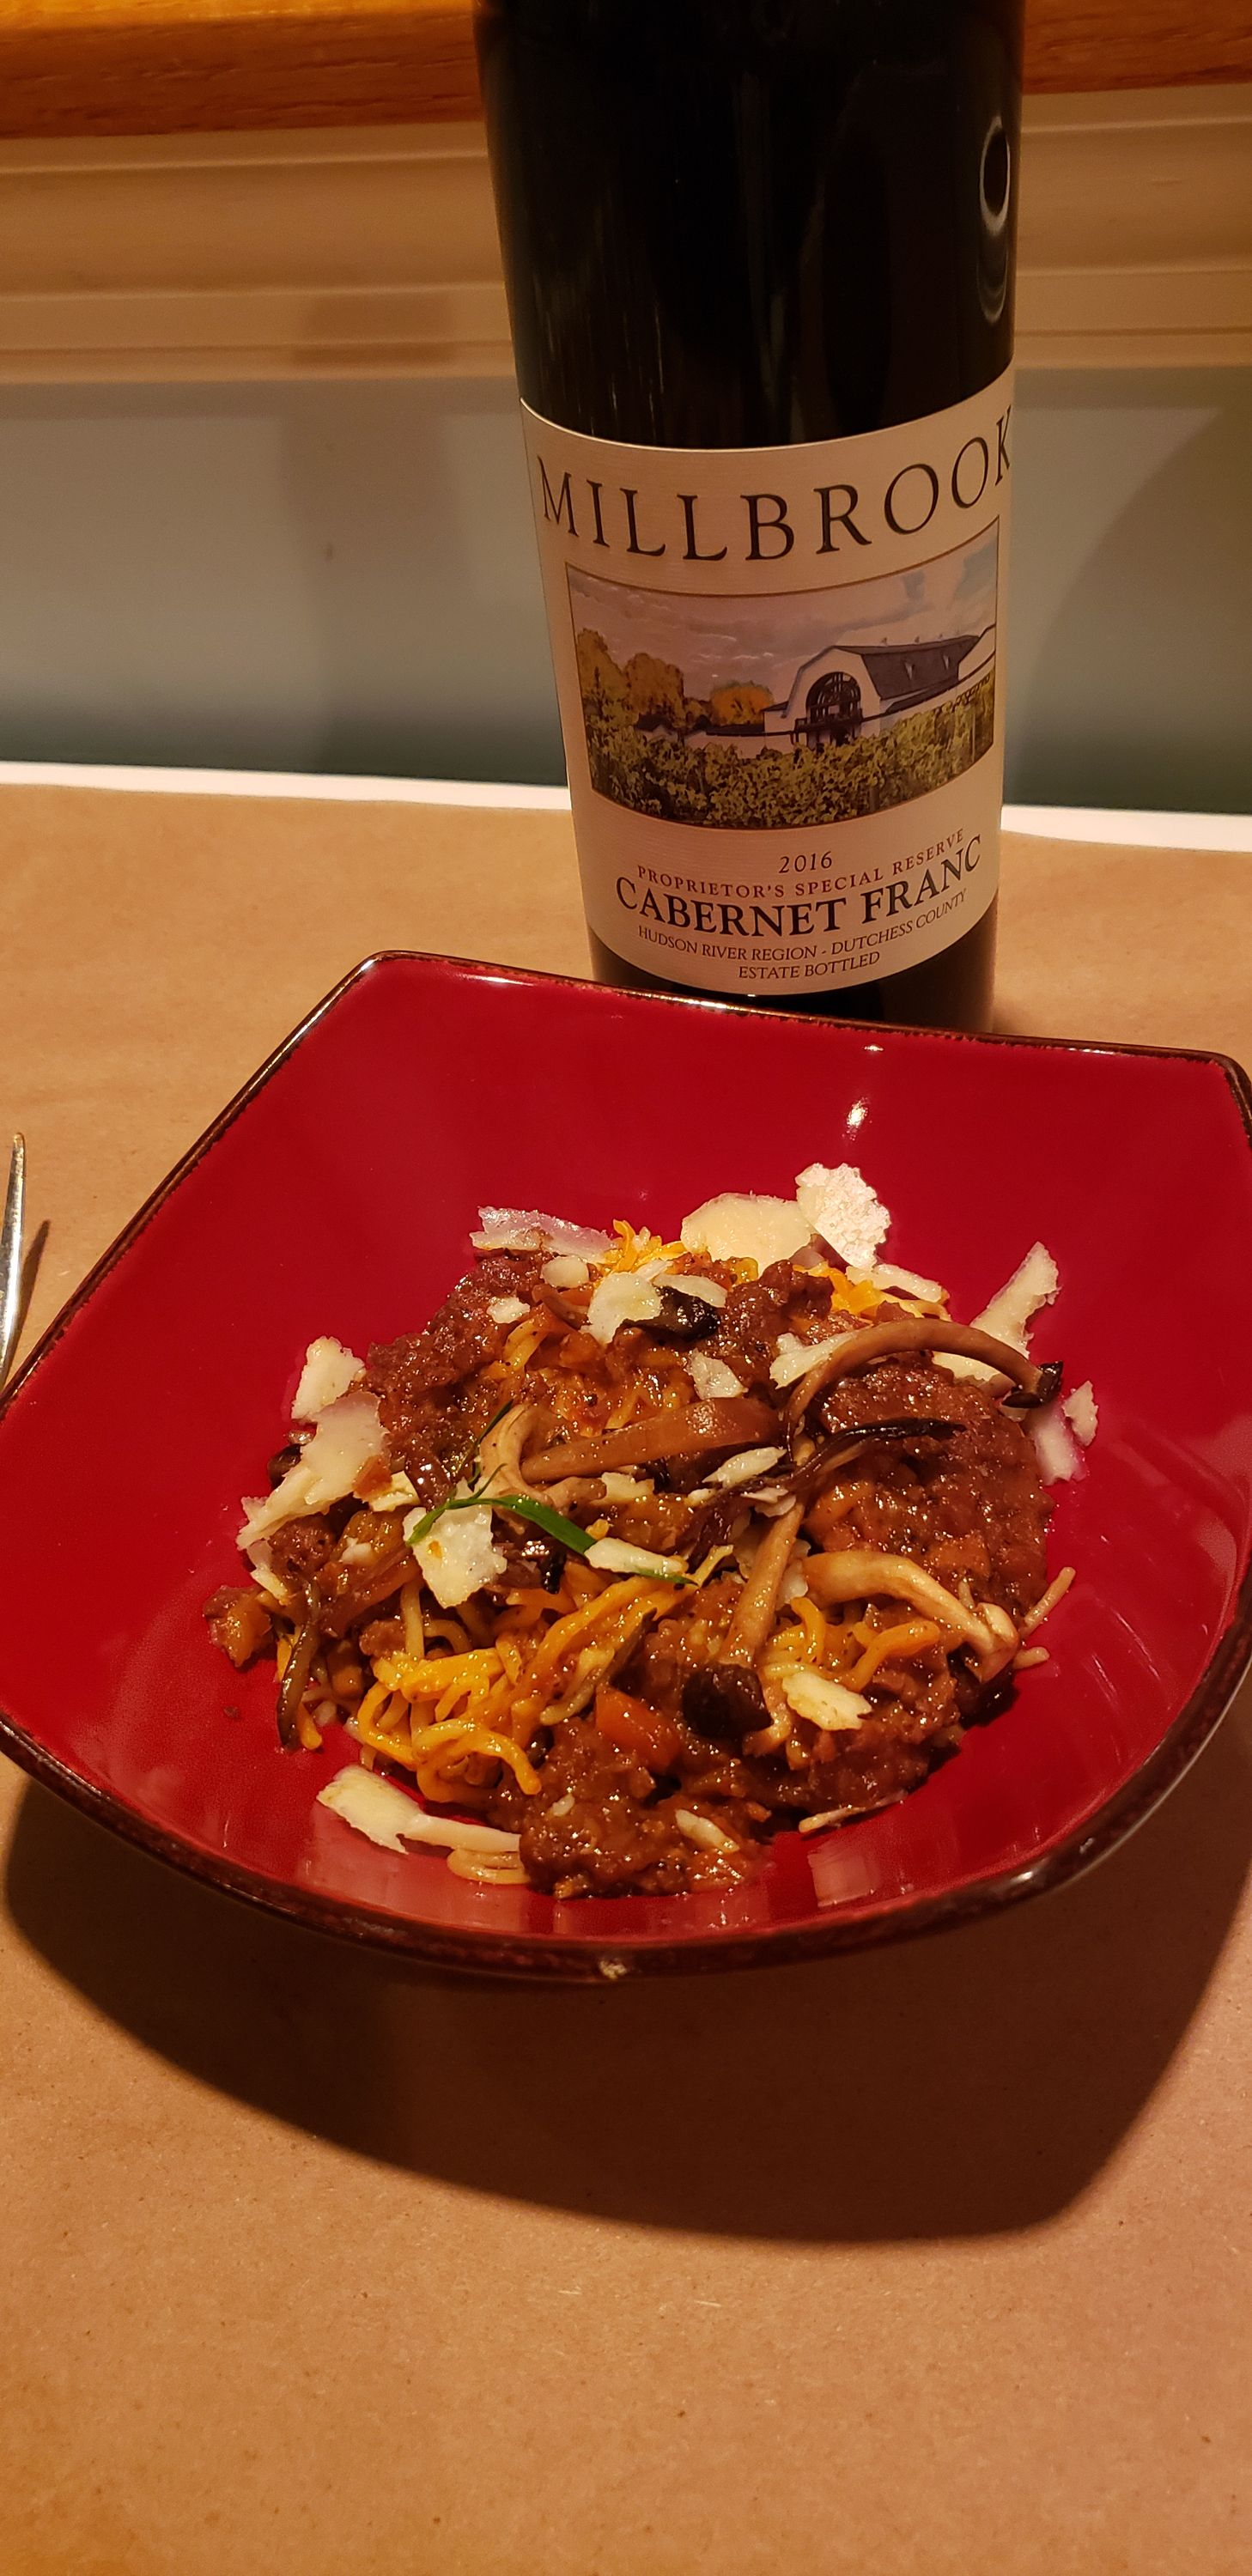 We Had A Great Wine Dinner Featuring Millbrook Vineyards And Winery Chef Gus Hit It Out Of The Ballpark With The P Wine Food Pairing Wine Dinner Braised Lamb